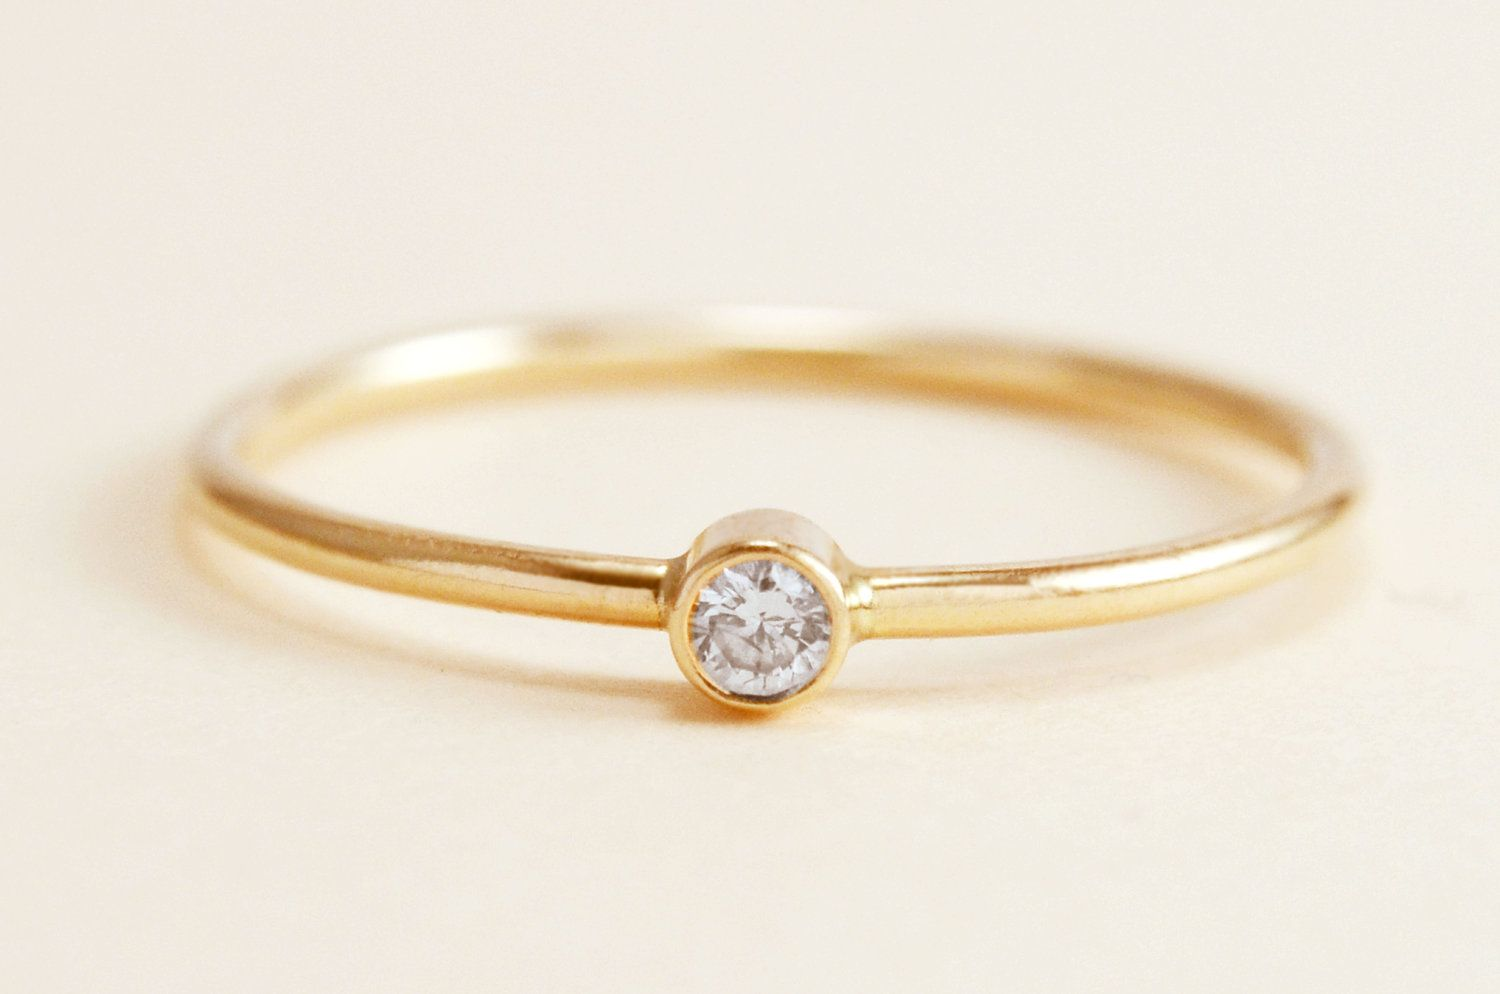 Simple gold wedding rings